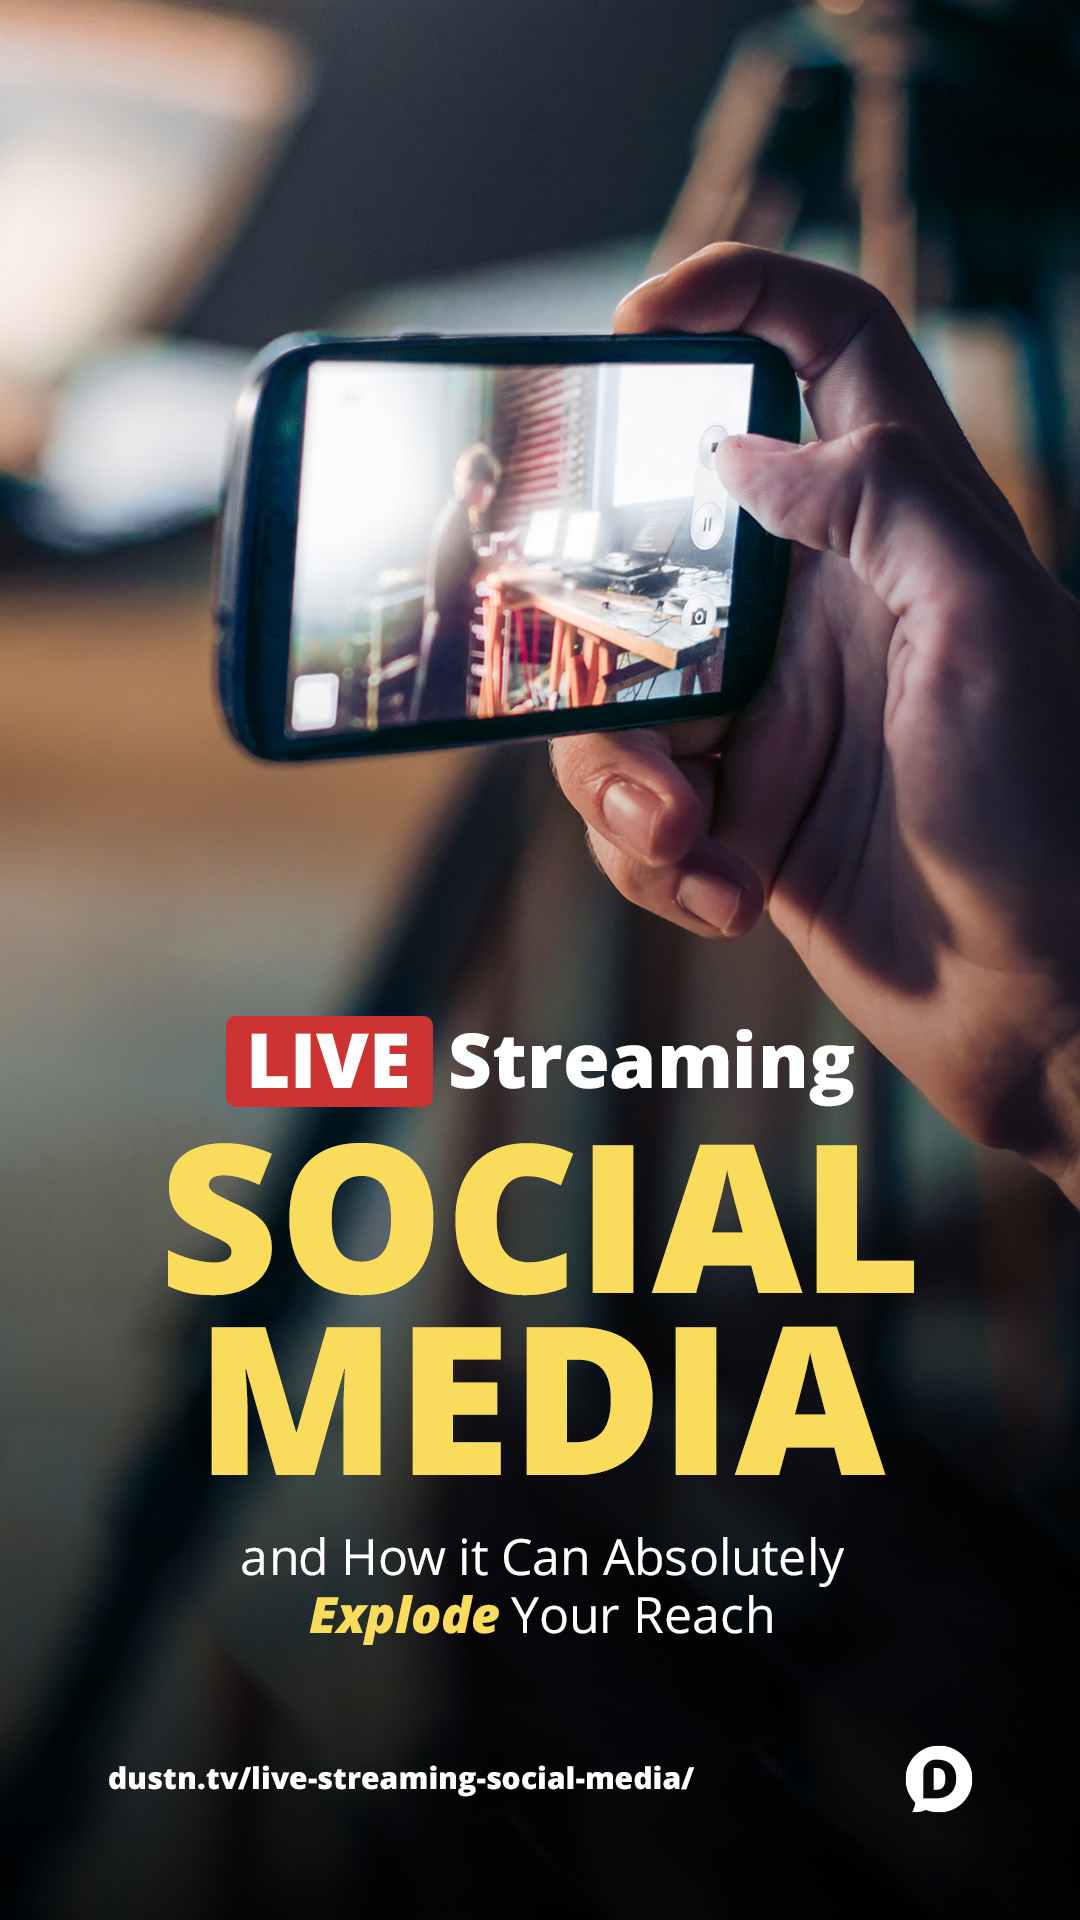 In case you haven't noticed, live streaming social media is blowing up the scene. Why is it so popular? How can you use it to build an audience of raving fans? #socialmedia #marketing #contentmarketing #blogging